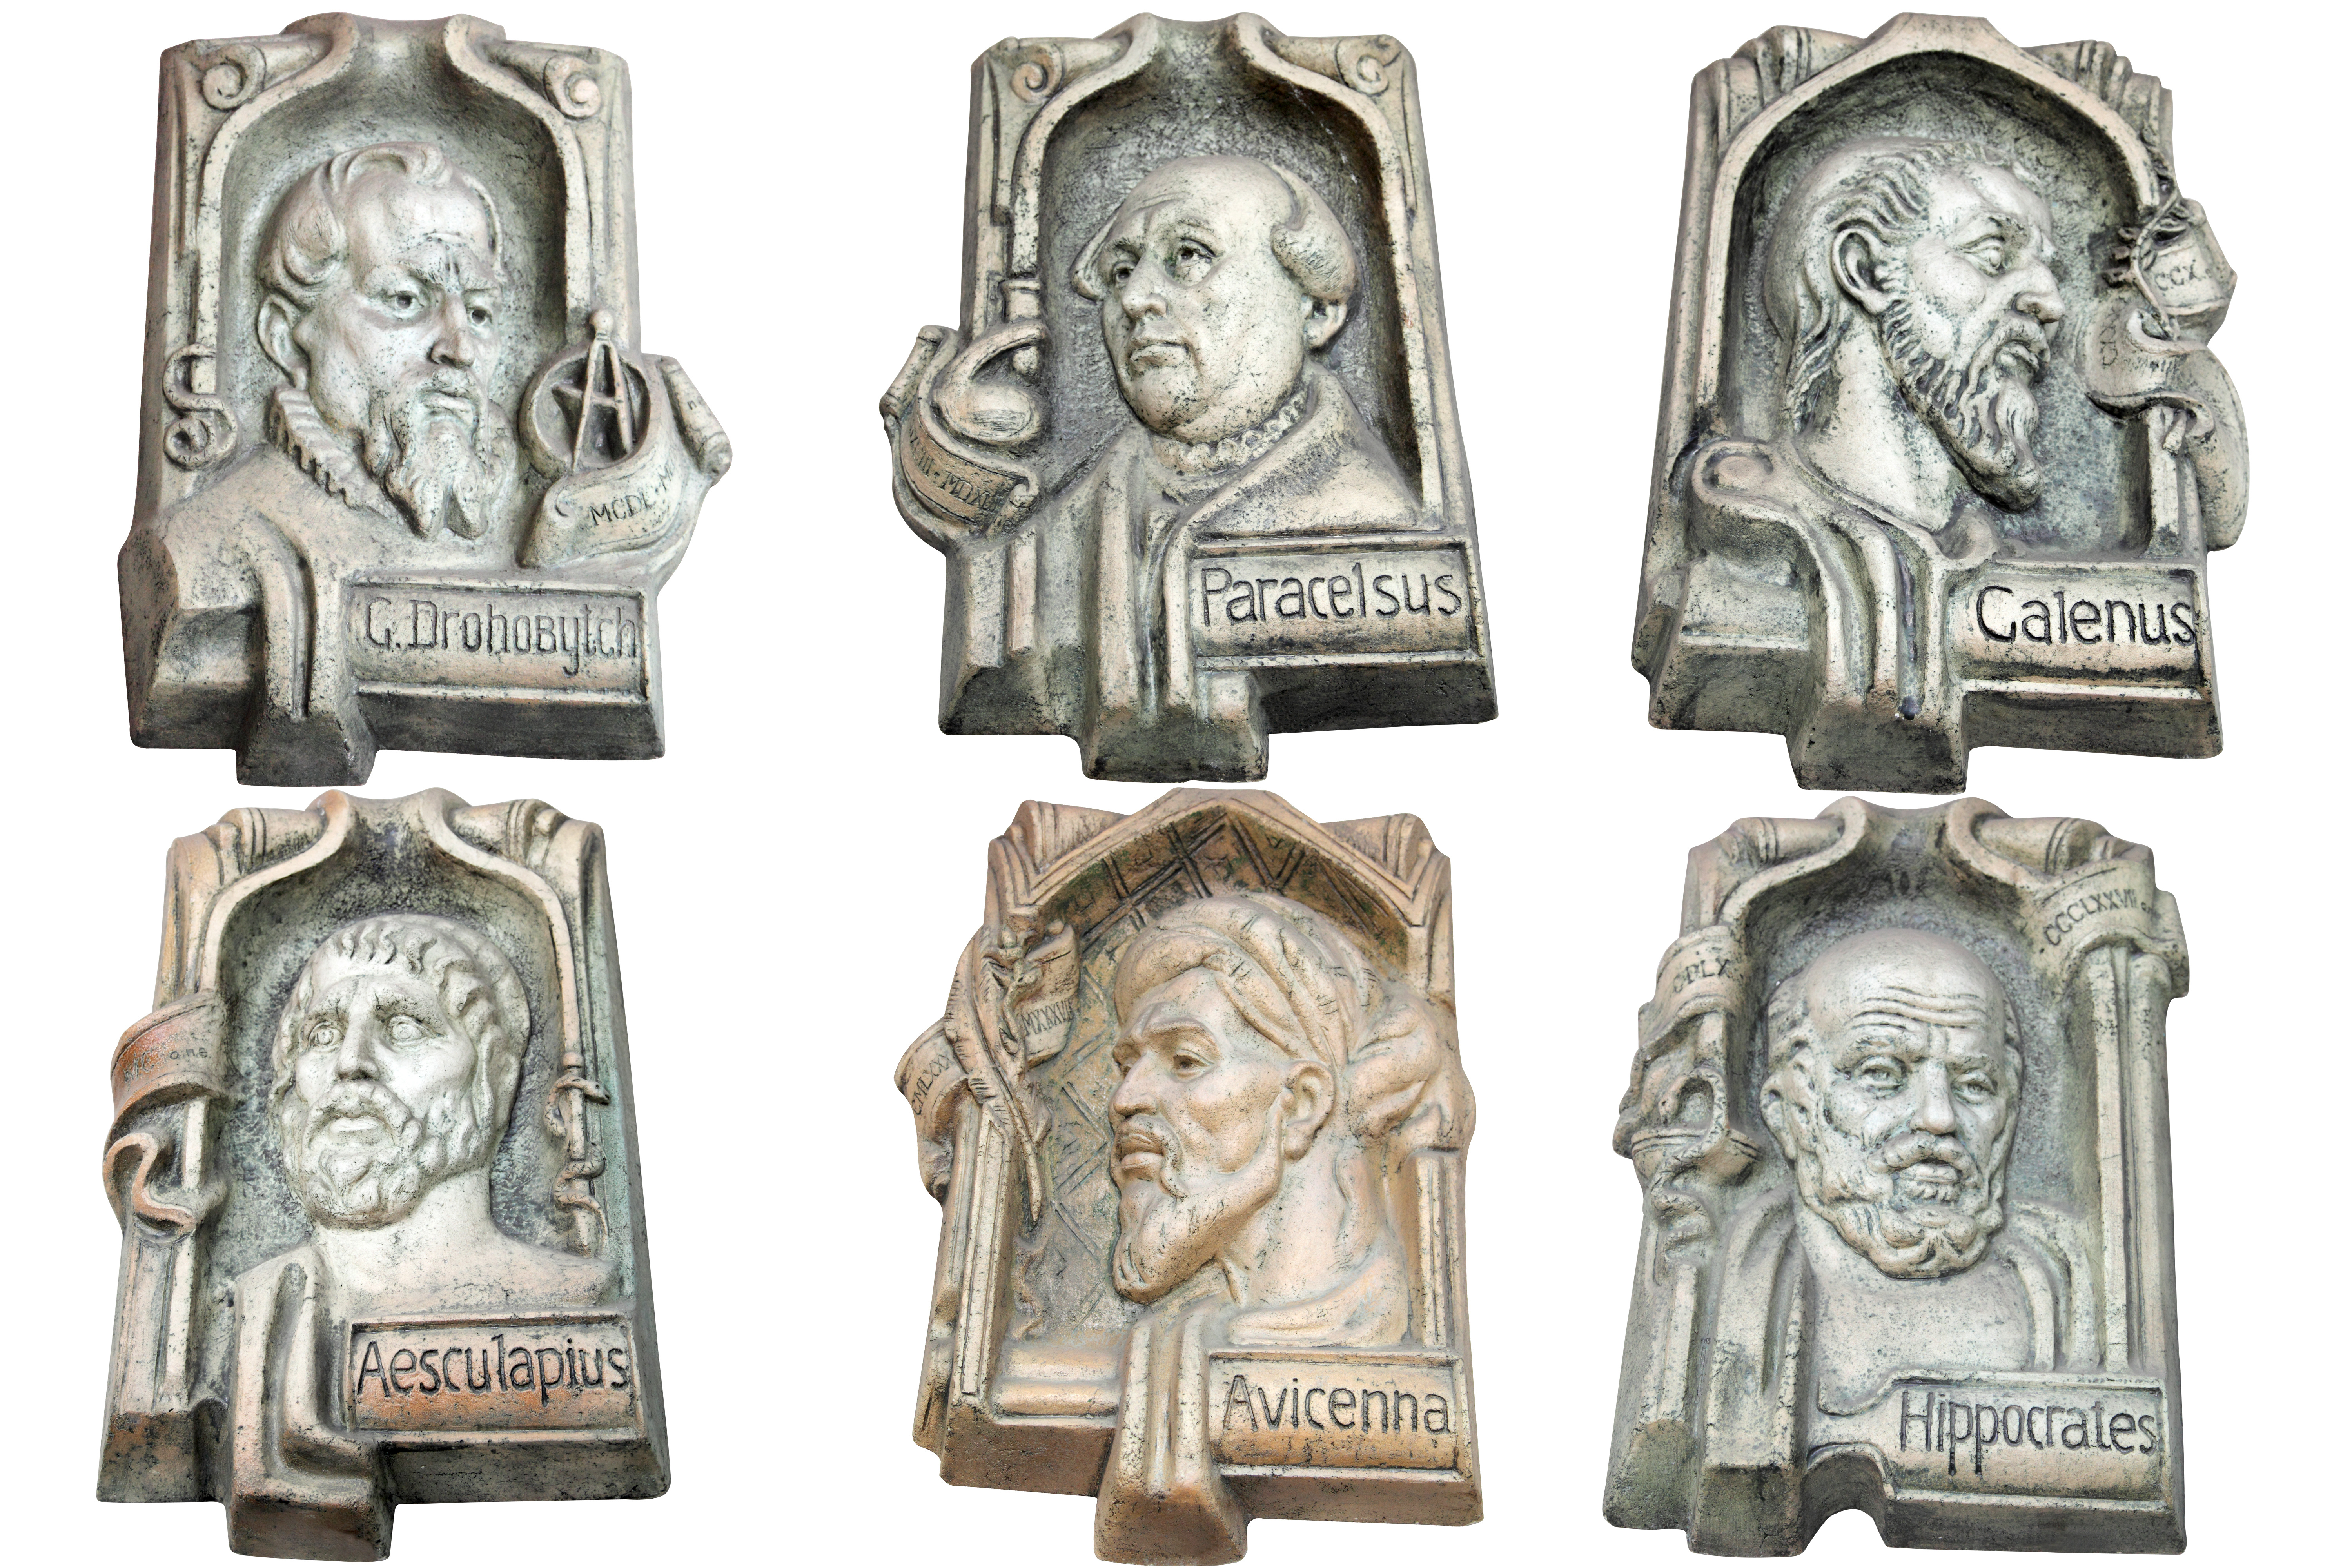 marble monuments of famous doctors of antiquity